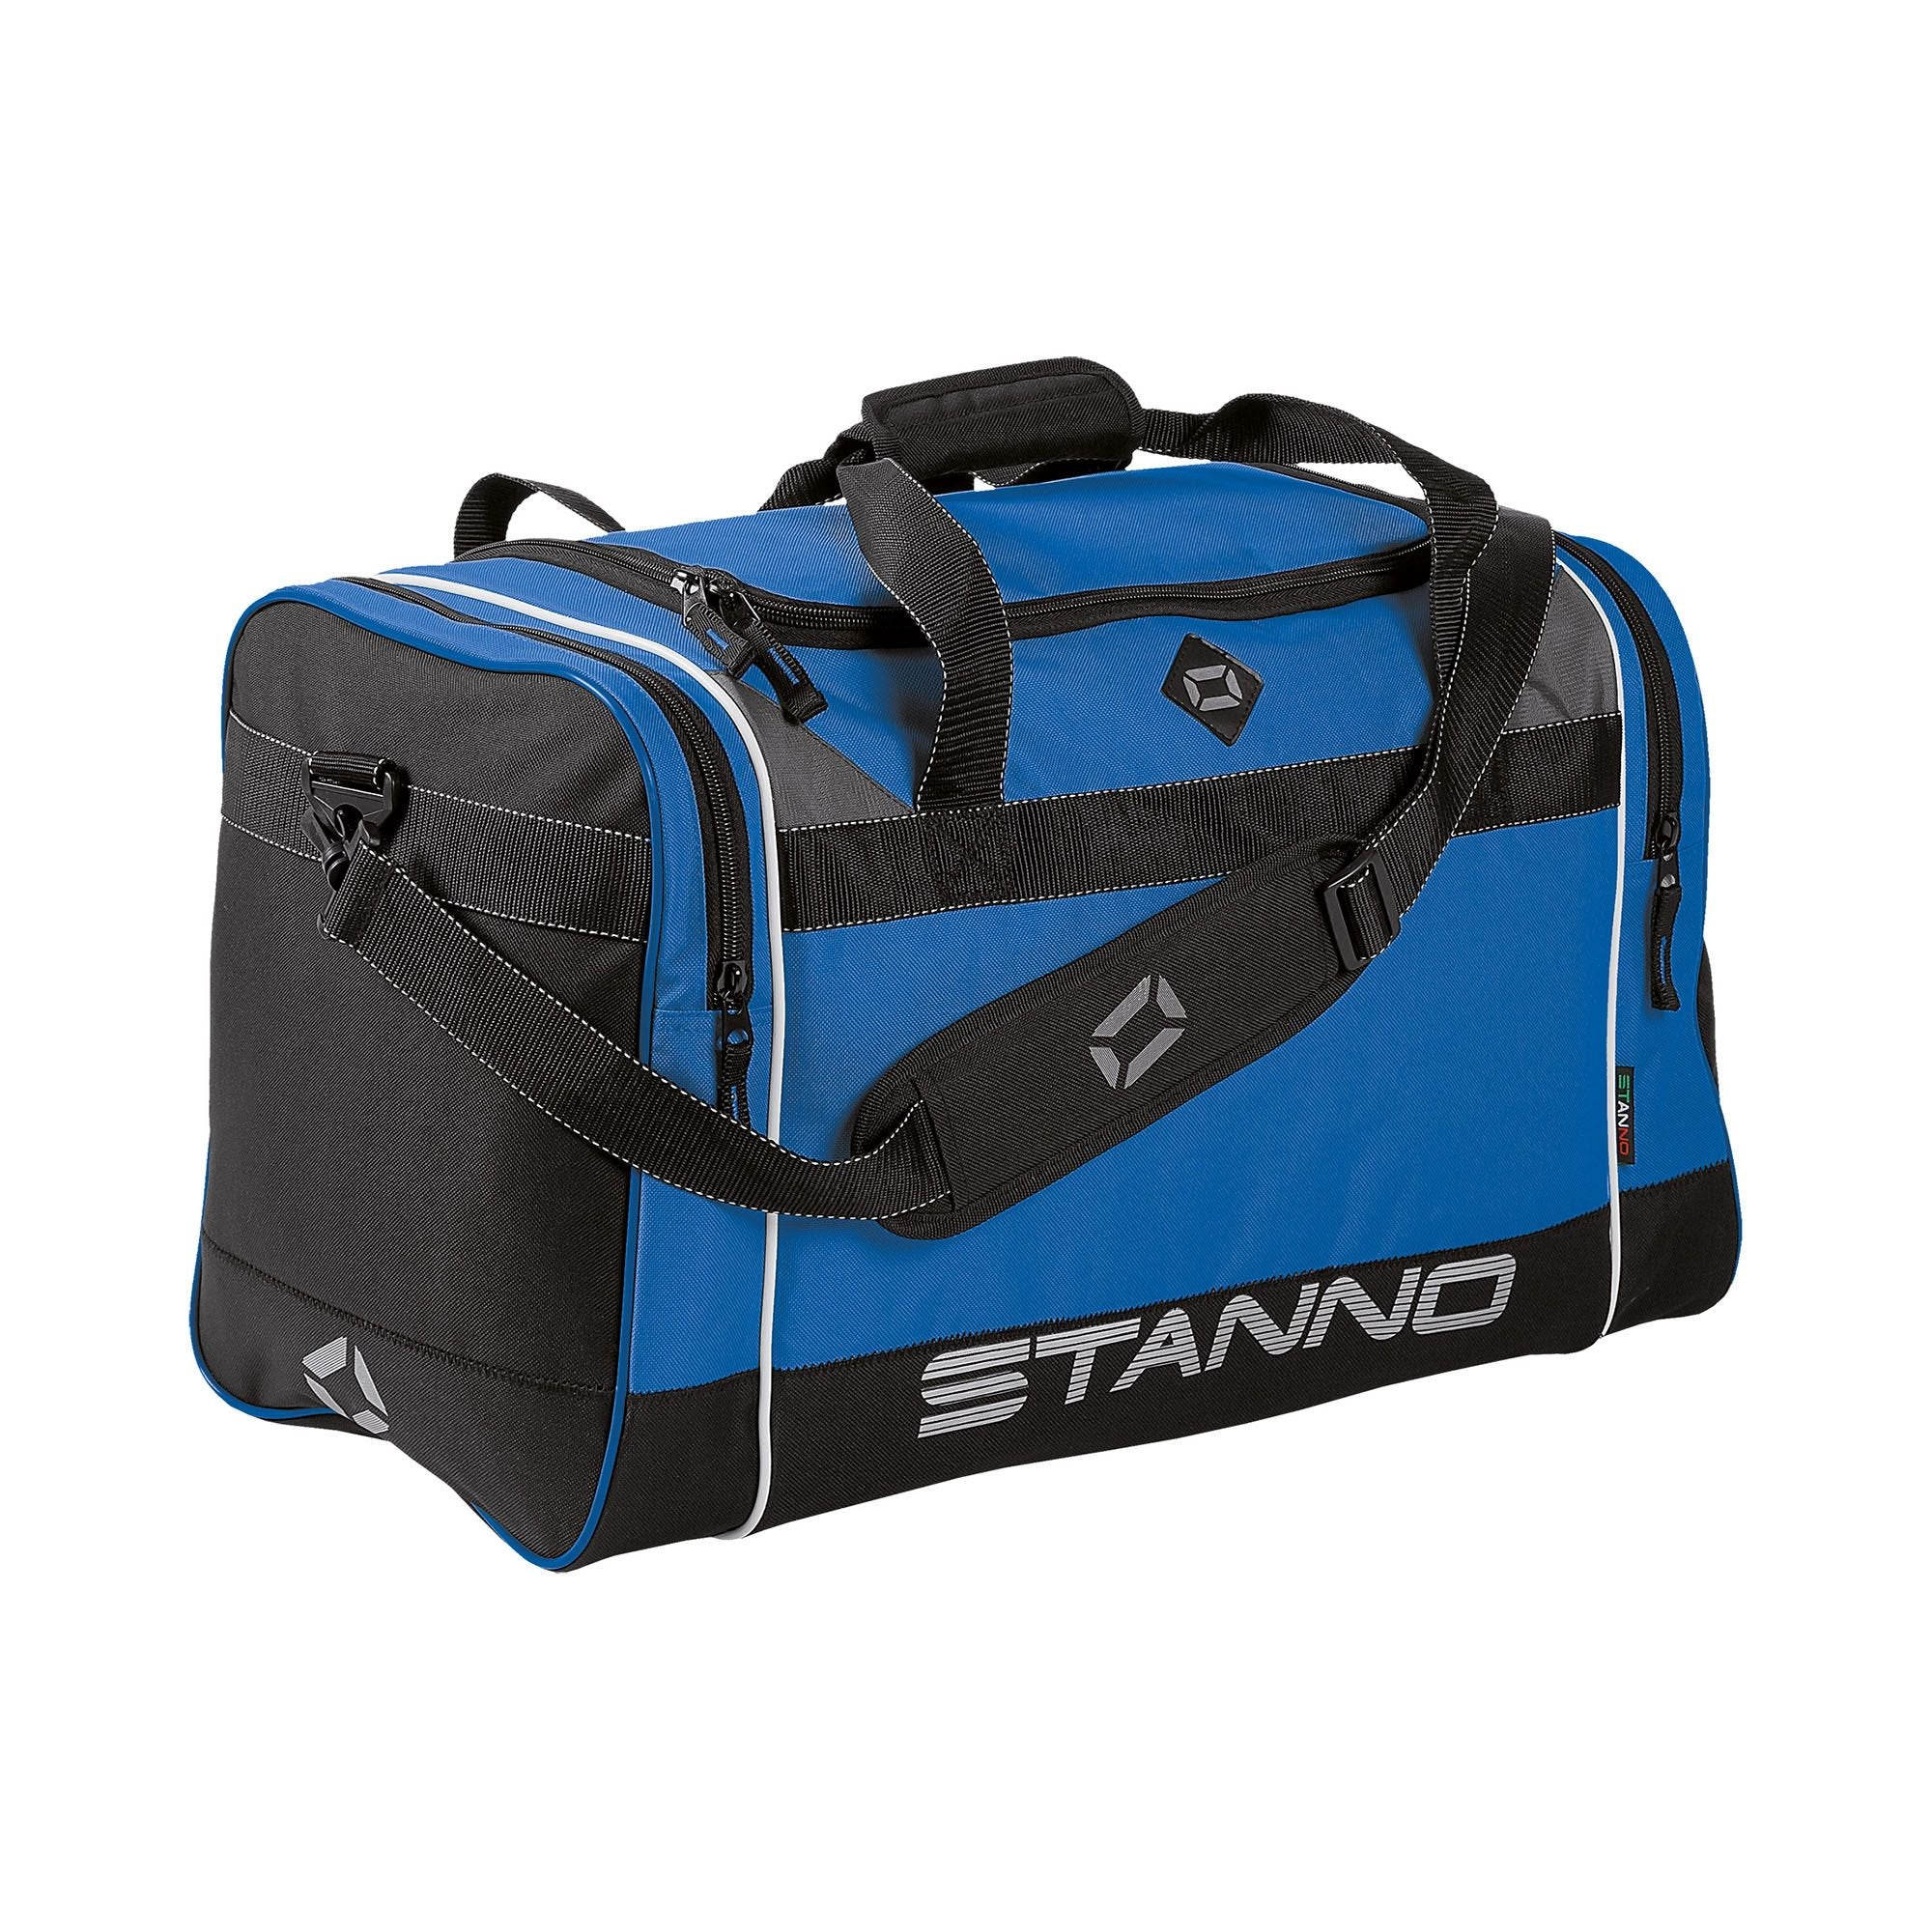 Stanno Sevilla Excellence sports bag in blue with contrast black end panelswith shoulder strap. Large text logo at the bottom of the side panel.